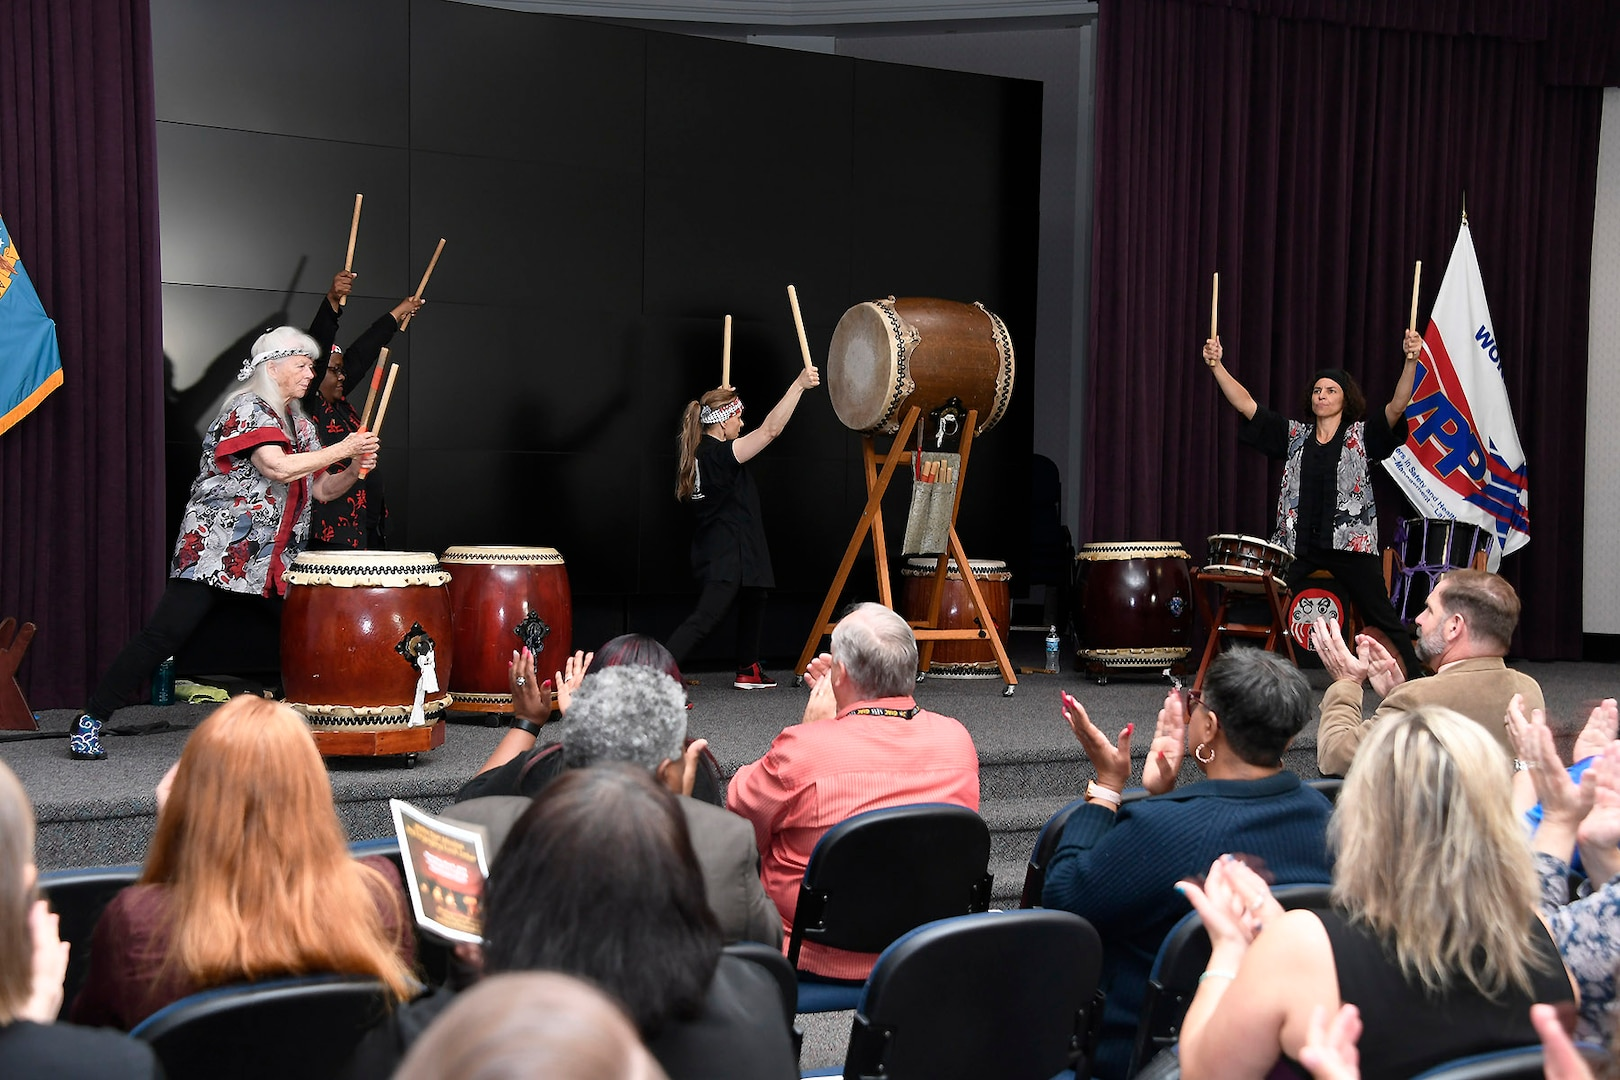 Taiko drummers educate their audience on their 2,000-year-old musical art form, which includes choreographed movements that mirror Japanese martial arts.